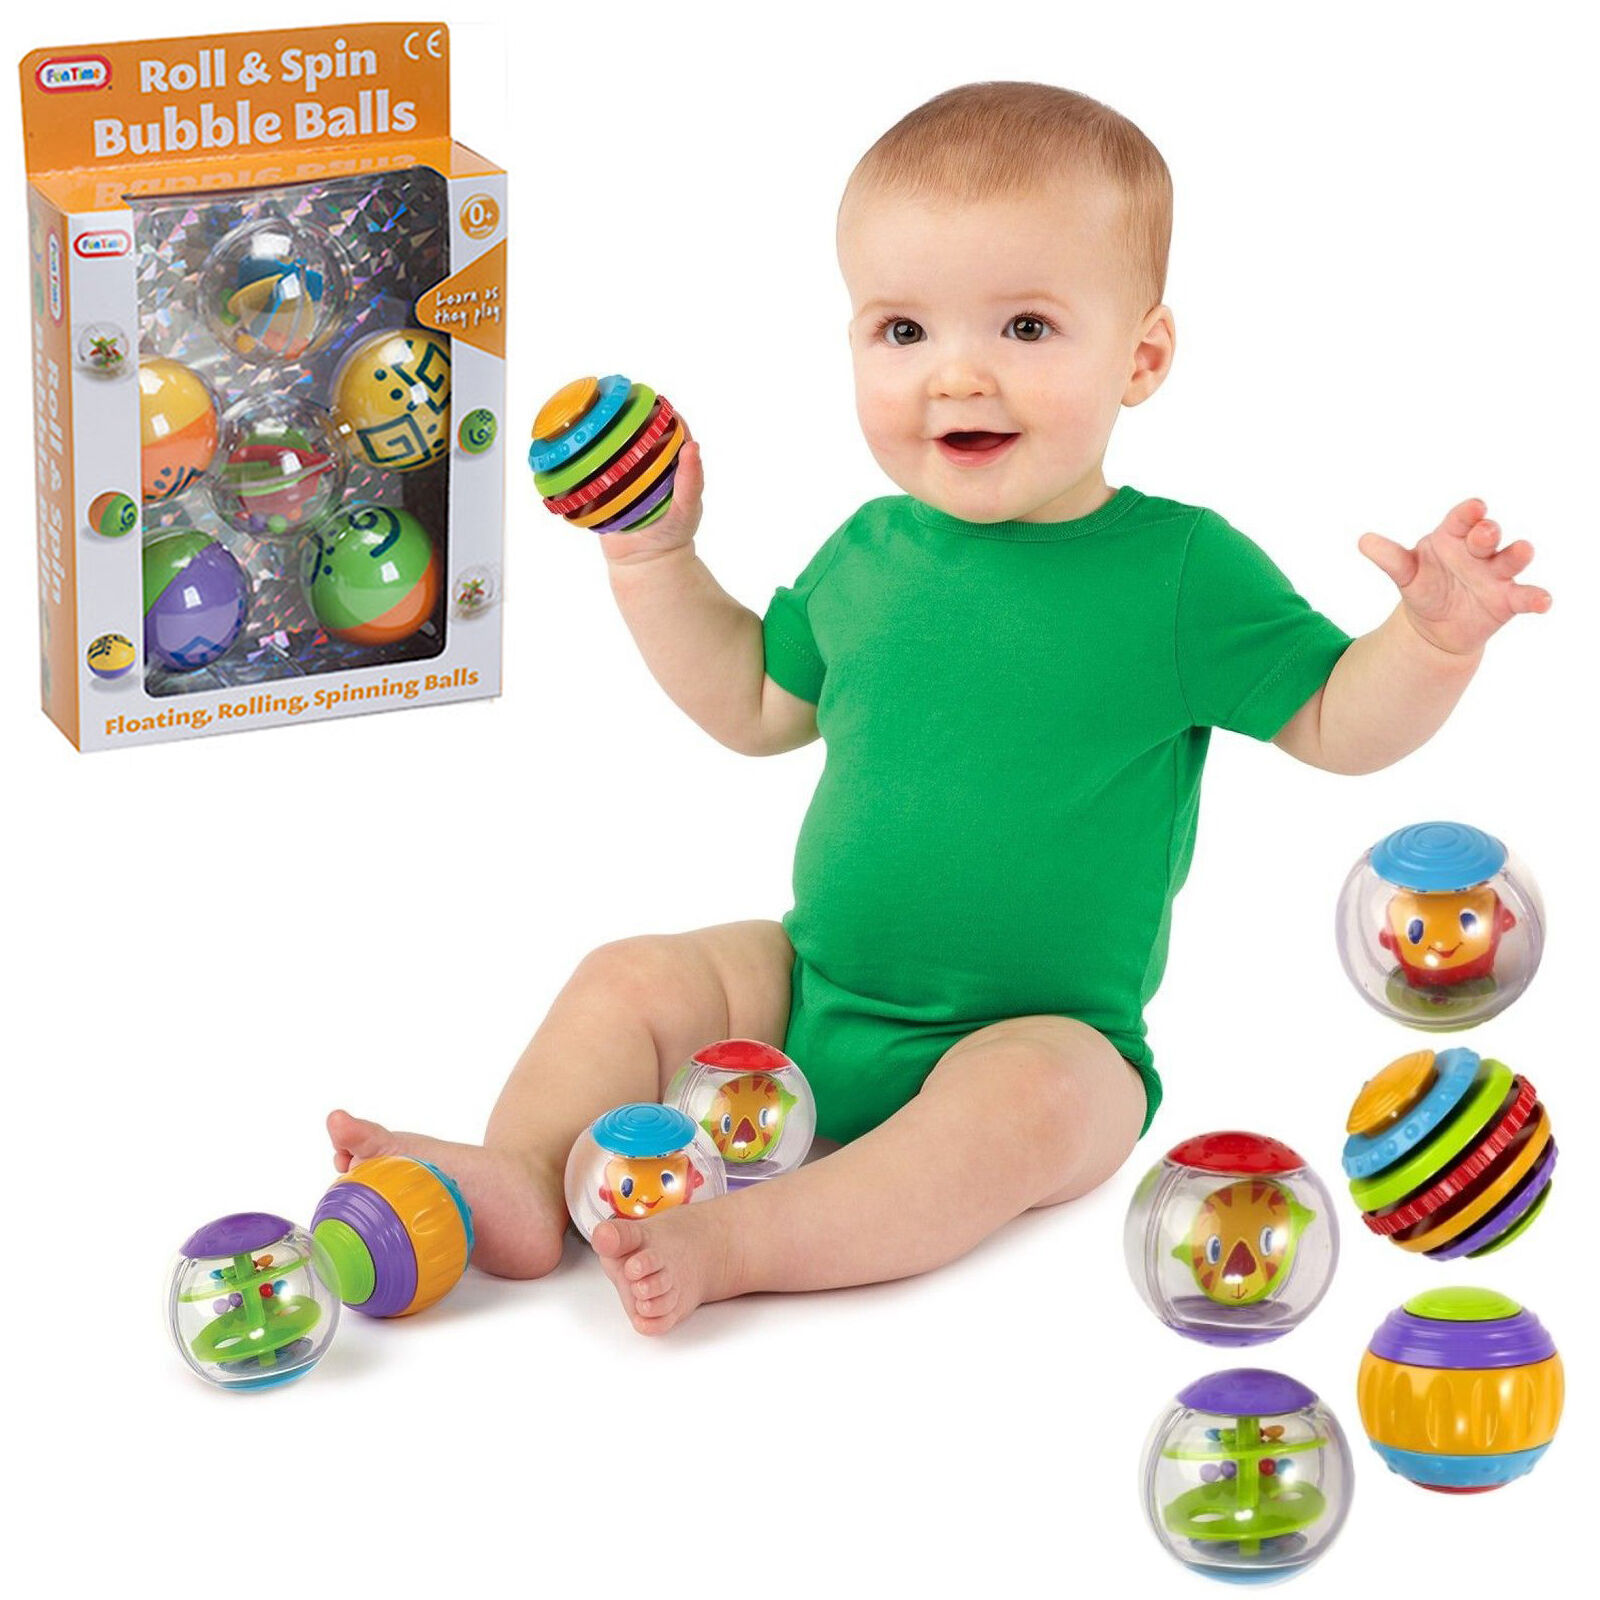 5pc Roll Spin Floating Bubble Balls Baby Toddler Activity Bath Toy New Boxed Fun